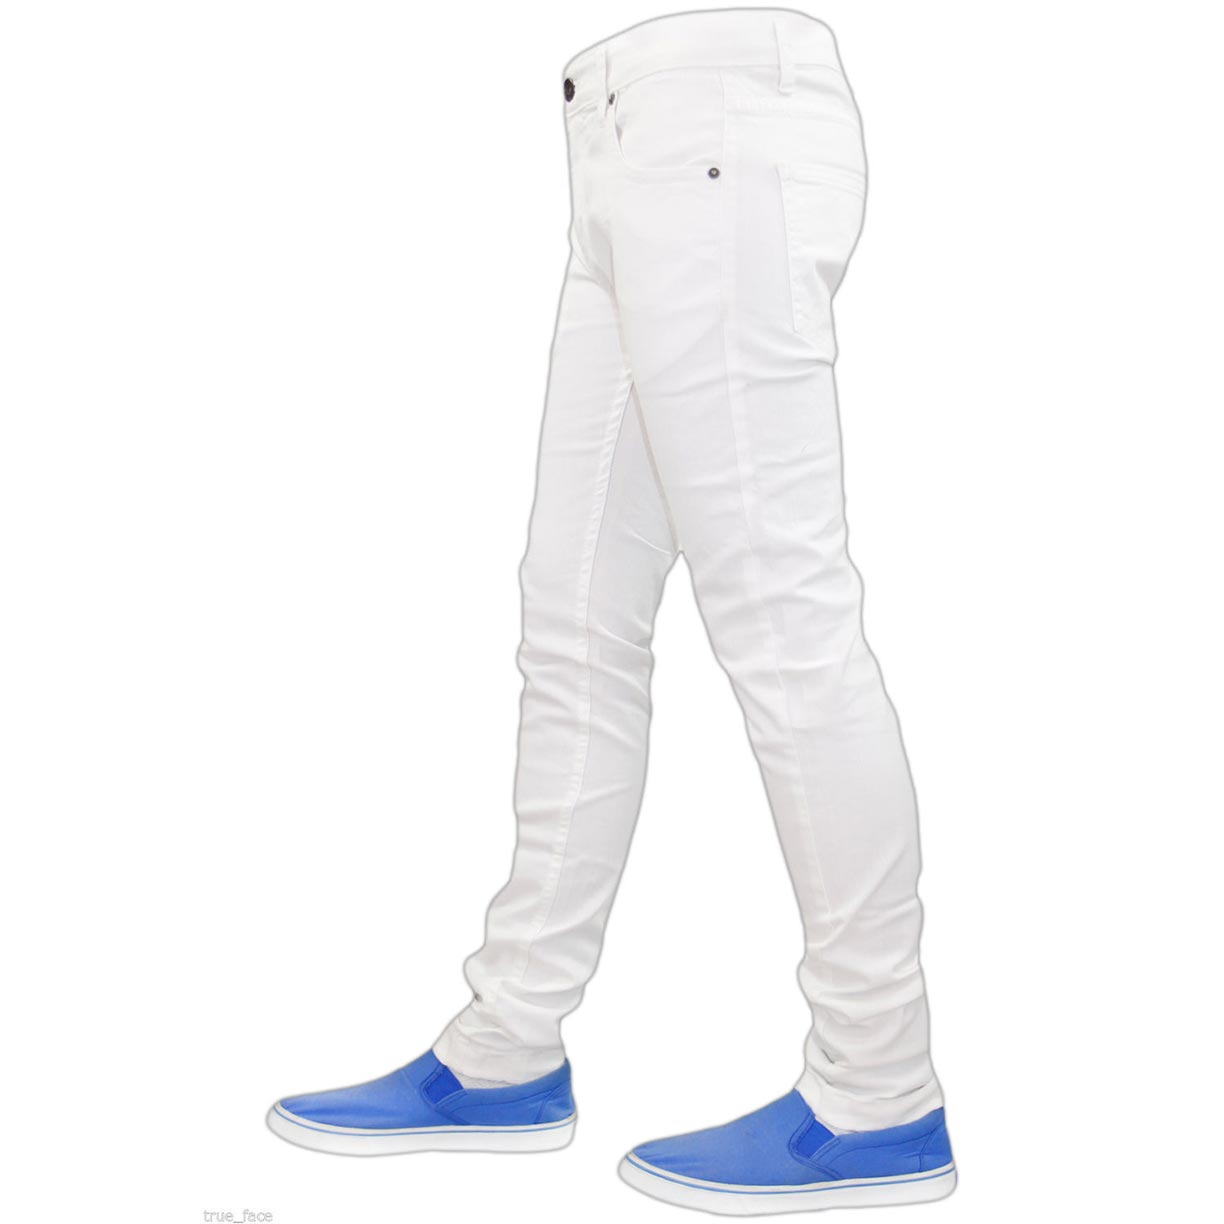 True Face Skinny Jeans TF021 White